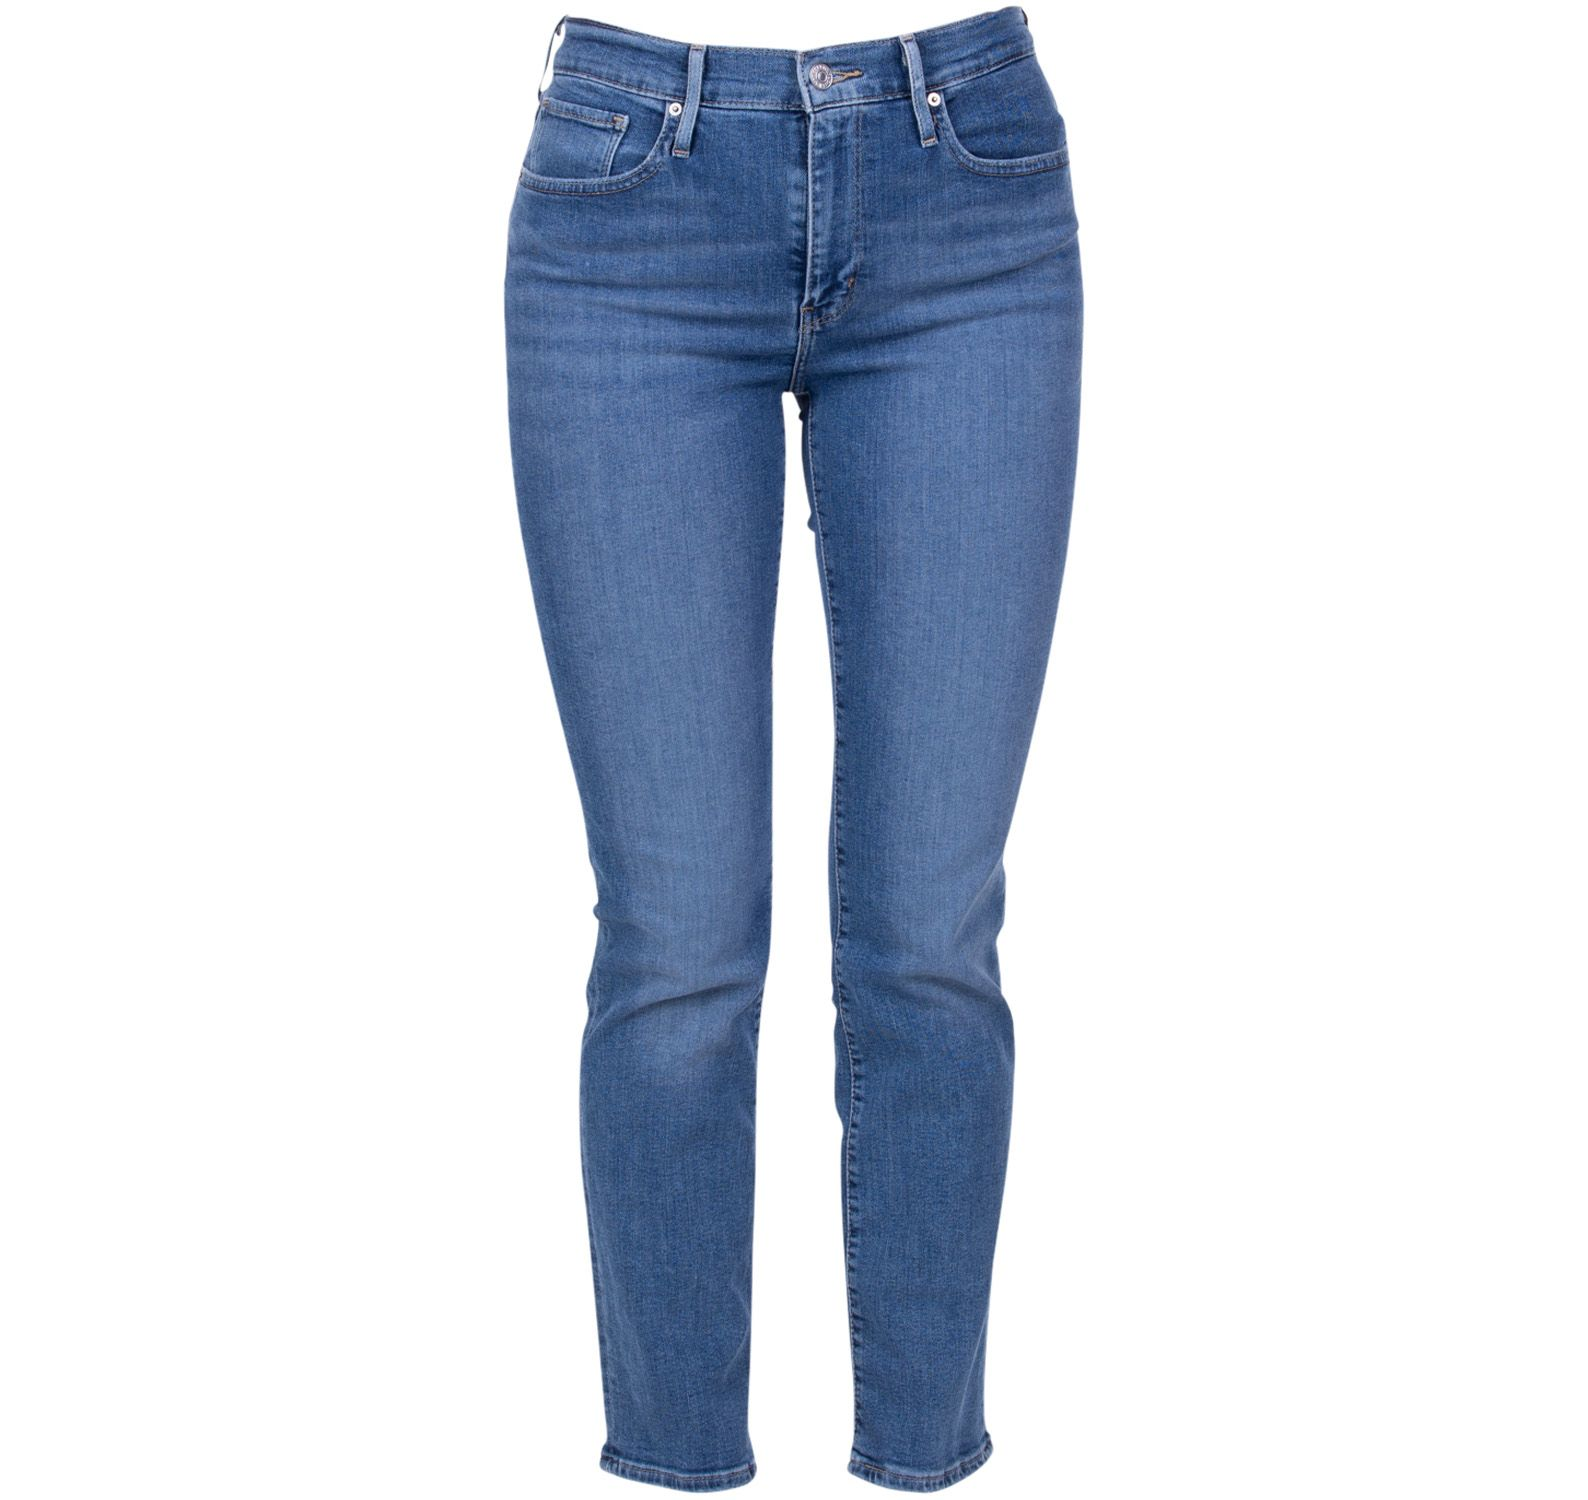 724 high rise straight second, med indigo - worn in, 25/32,  levi's jeans